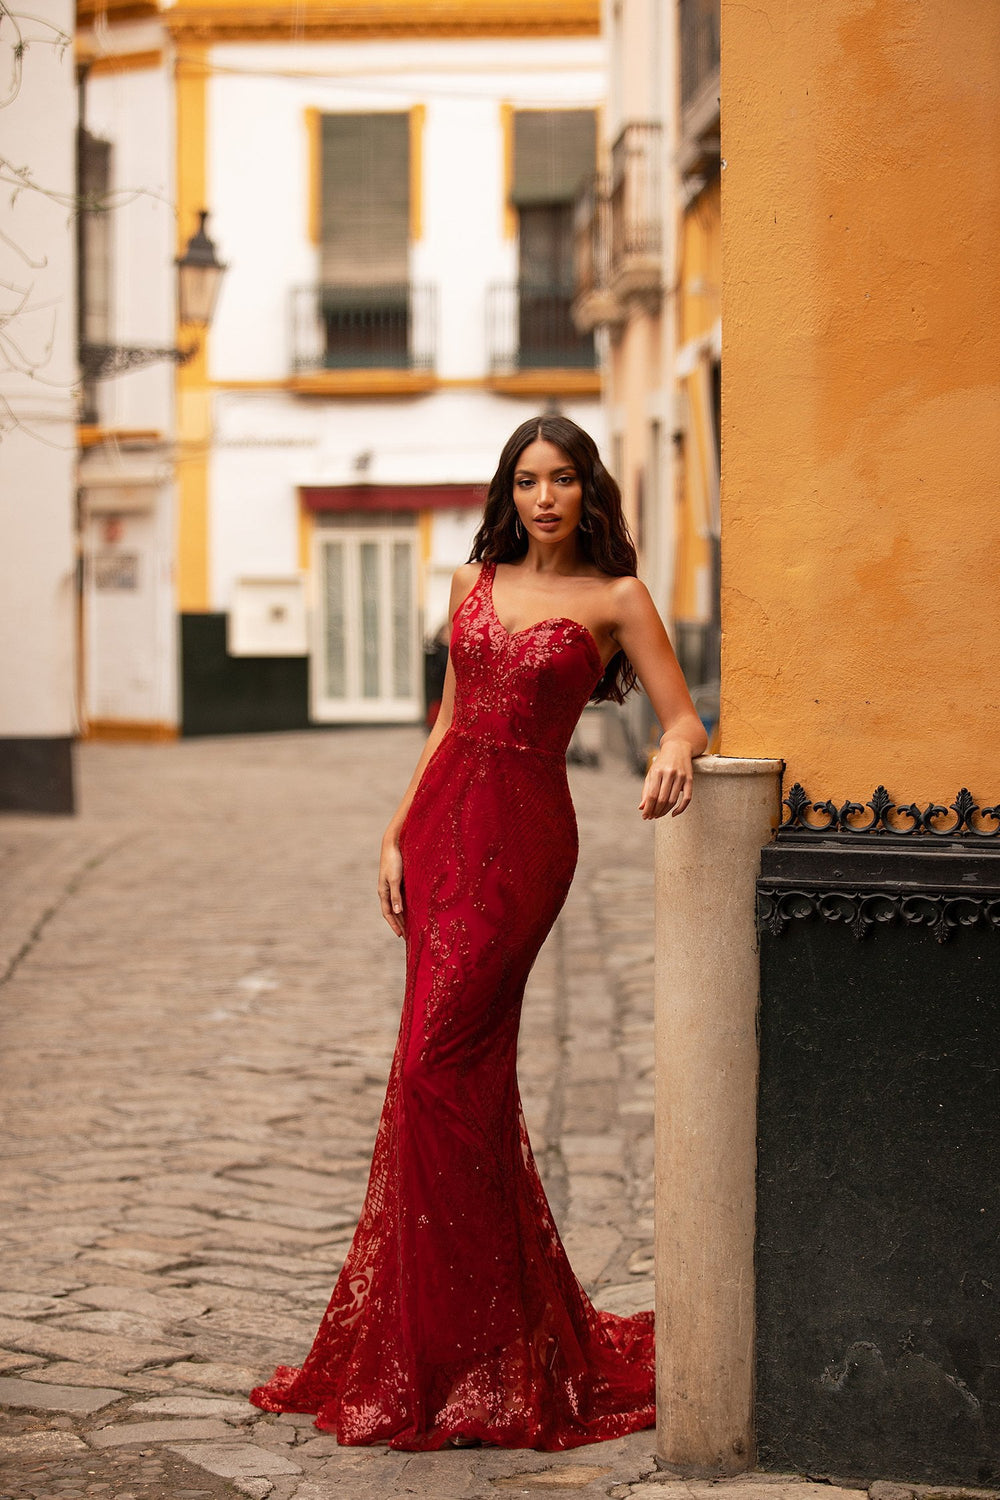 Florencita - Deep Red One-Shoulder Sequin Gown with Mermaid Train